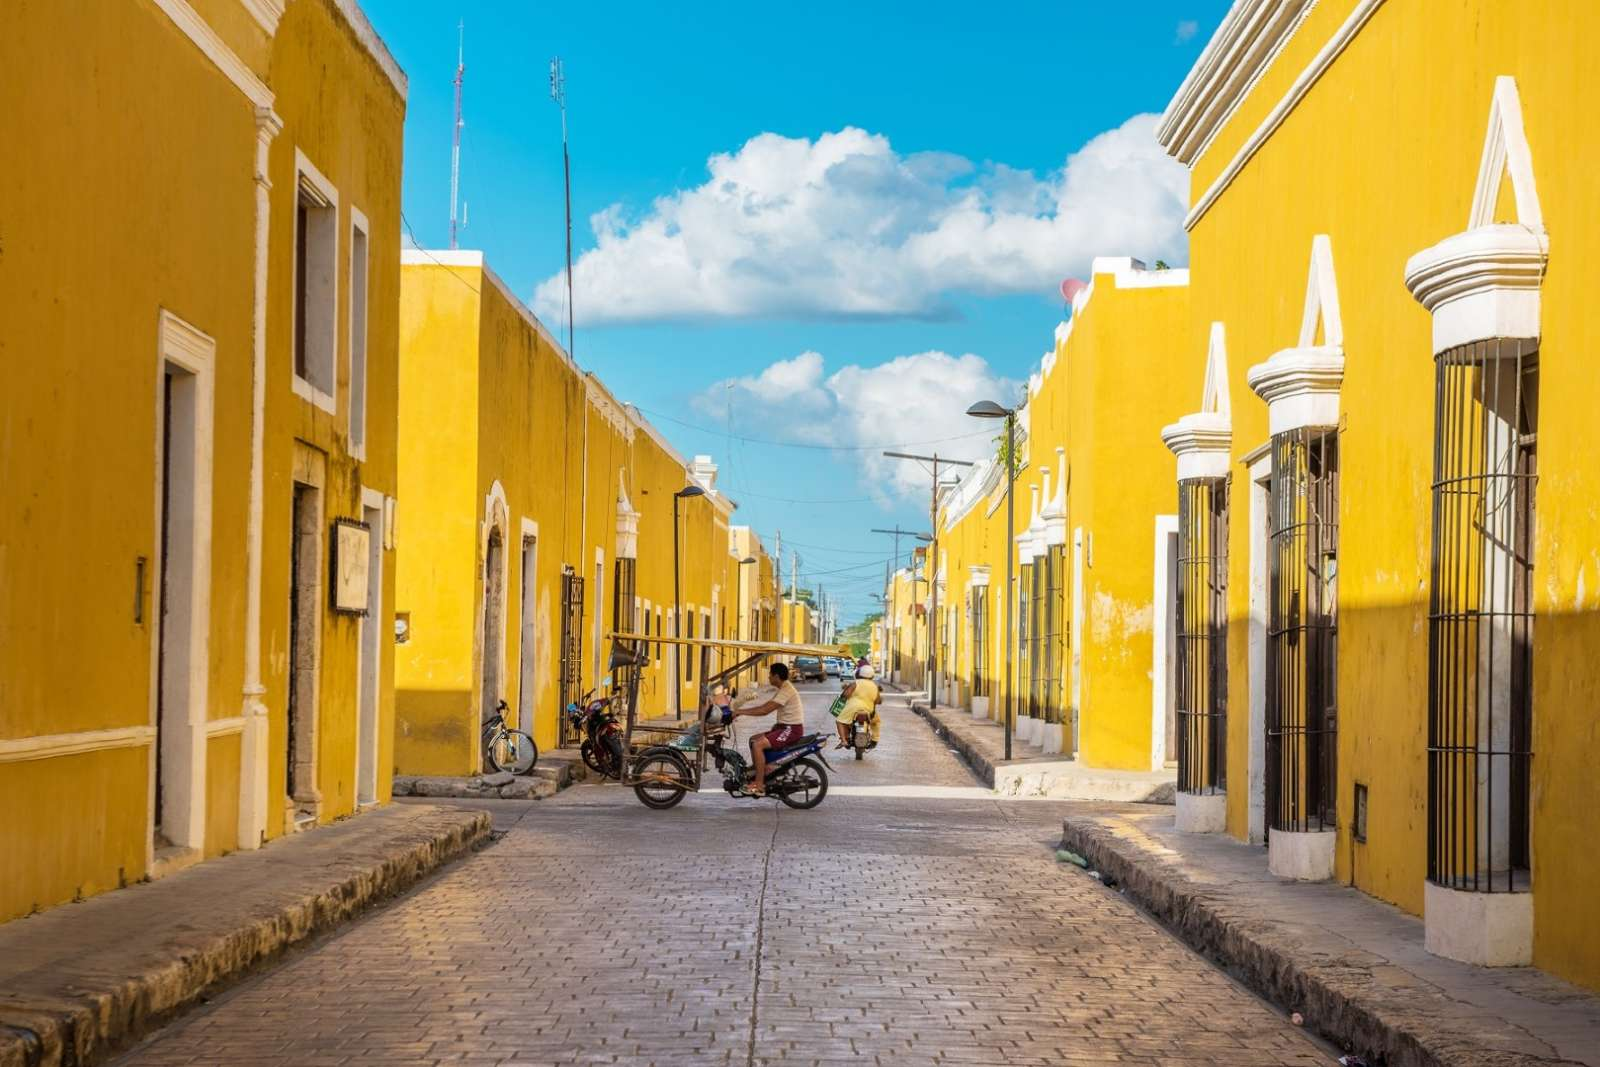 The colonial town of Izamal in Mexico